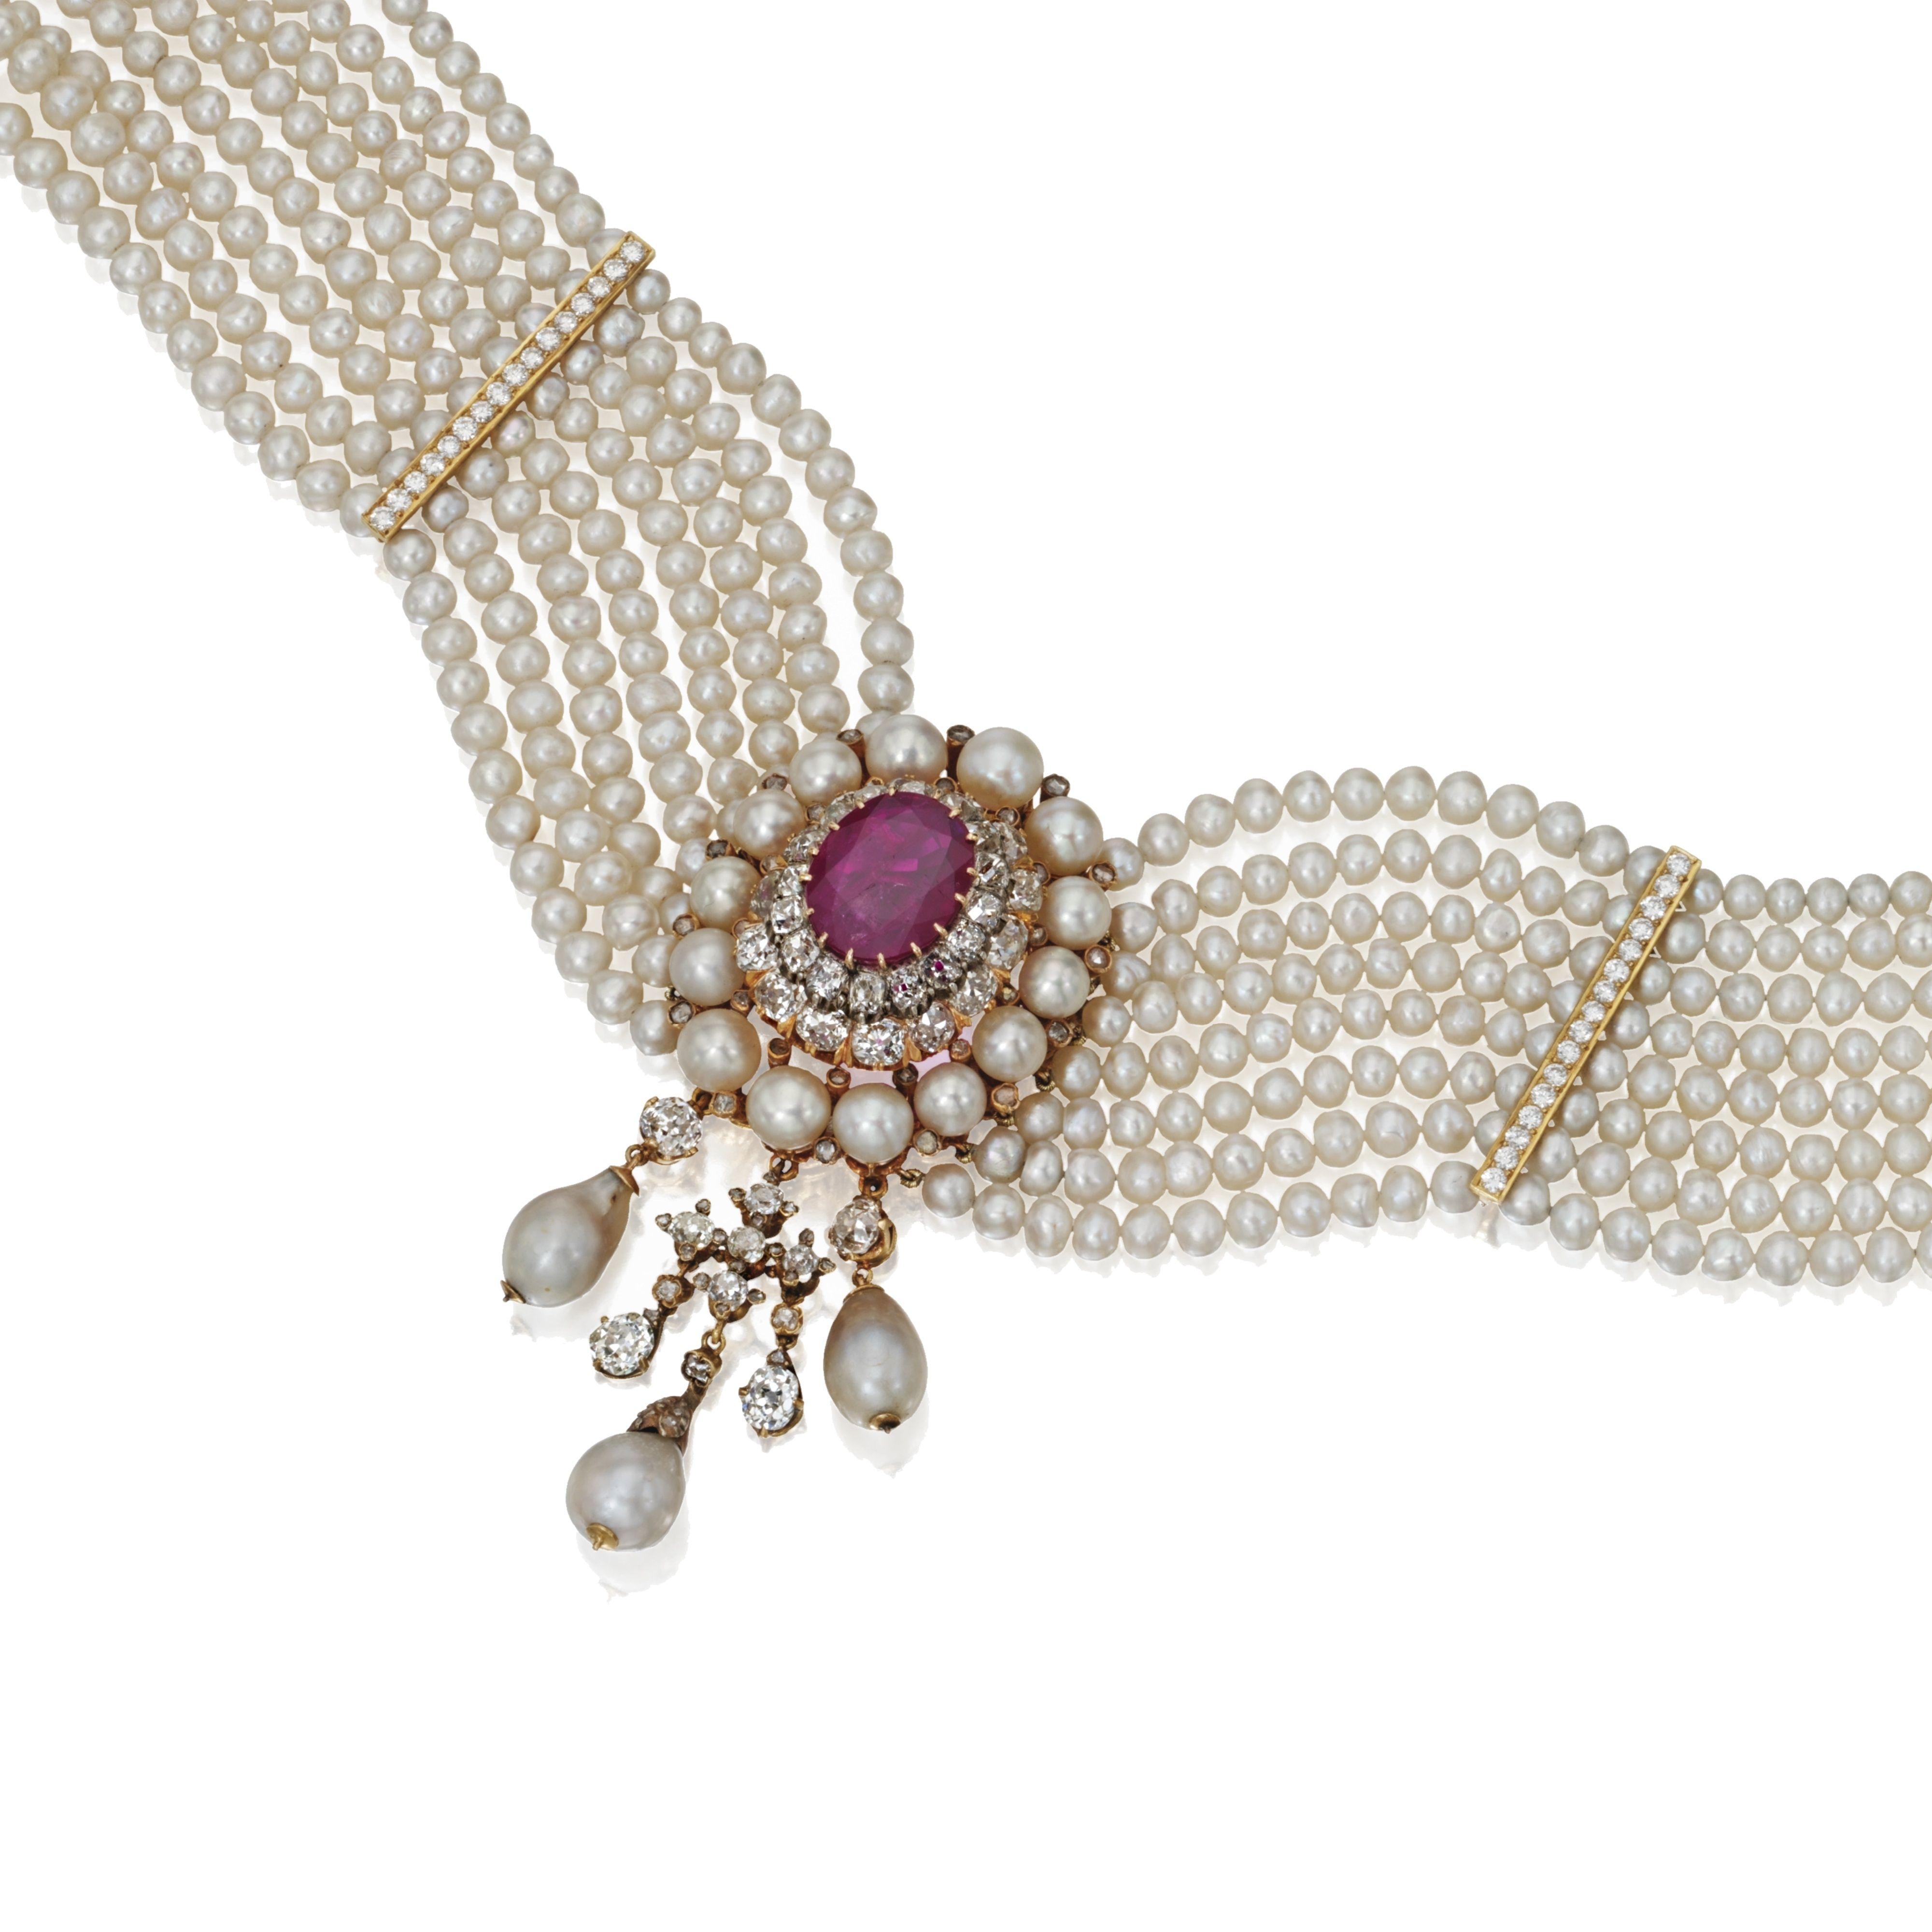 Gold, Natural Pearl, Diamond & Ruby Choker Necklace Set At The Center With